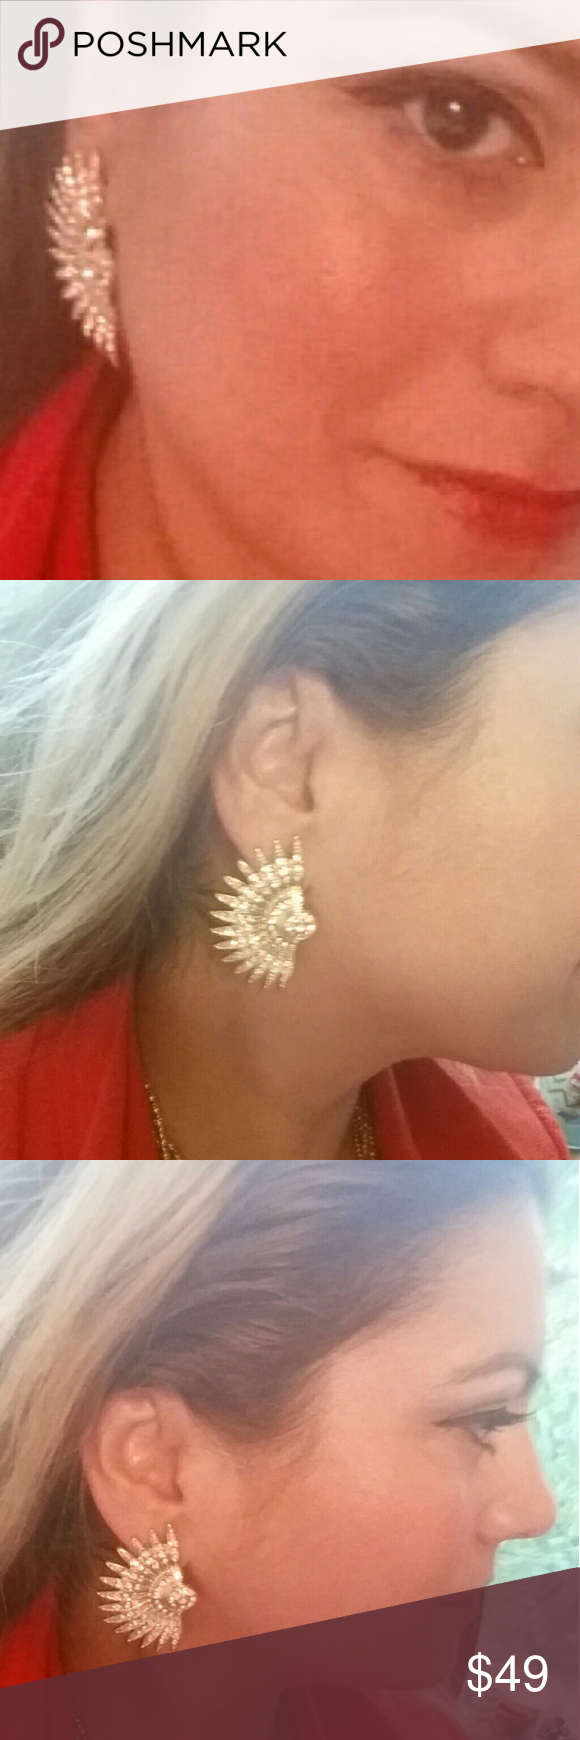 Elegant fan pave with cz earrings  very beautiful This are earrings  that you won't see very  common. So beautiful  .Not to heavy and they definitely enhance your elegance. Jewelry Earrings